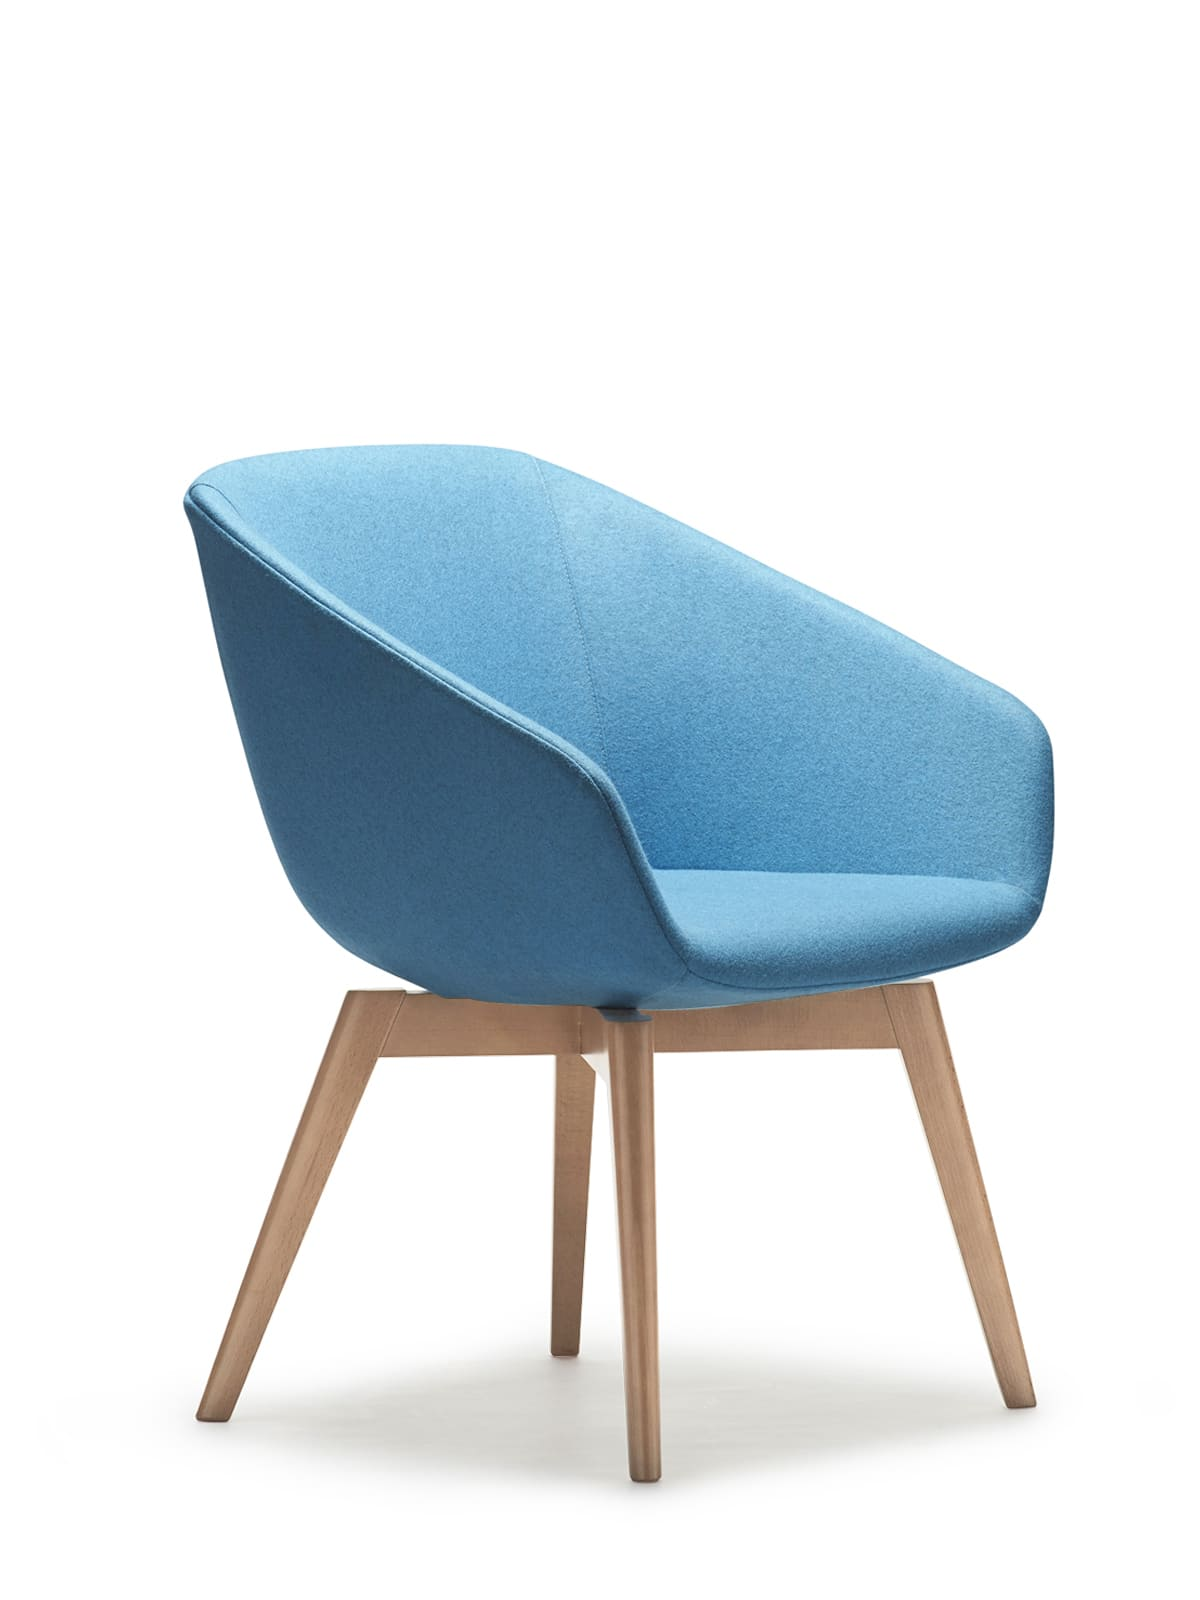 Buy A Delphi Chair Online Collaborative Seating Fabric